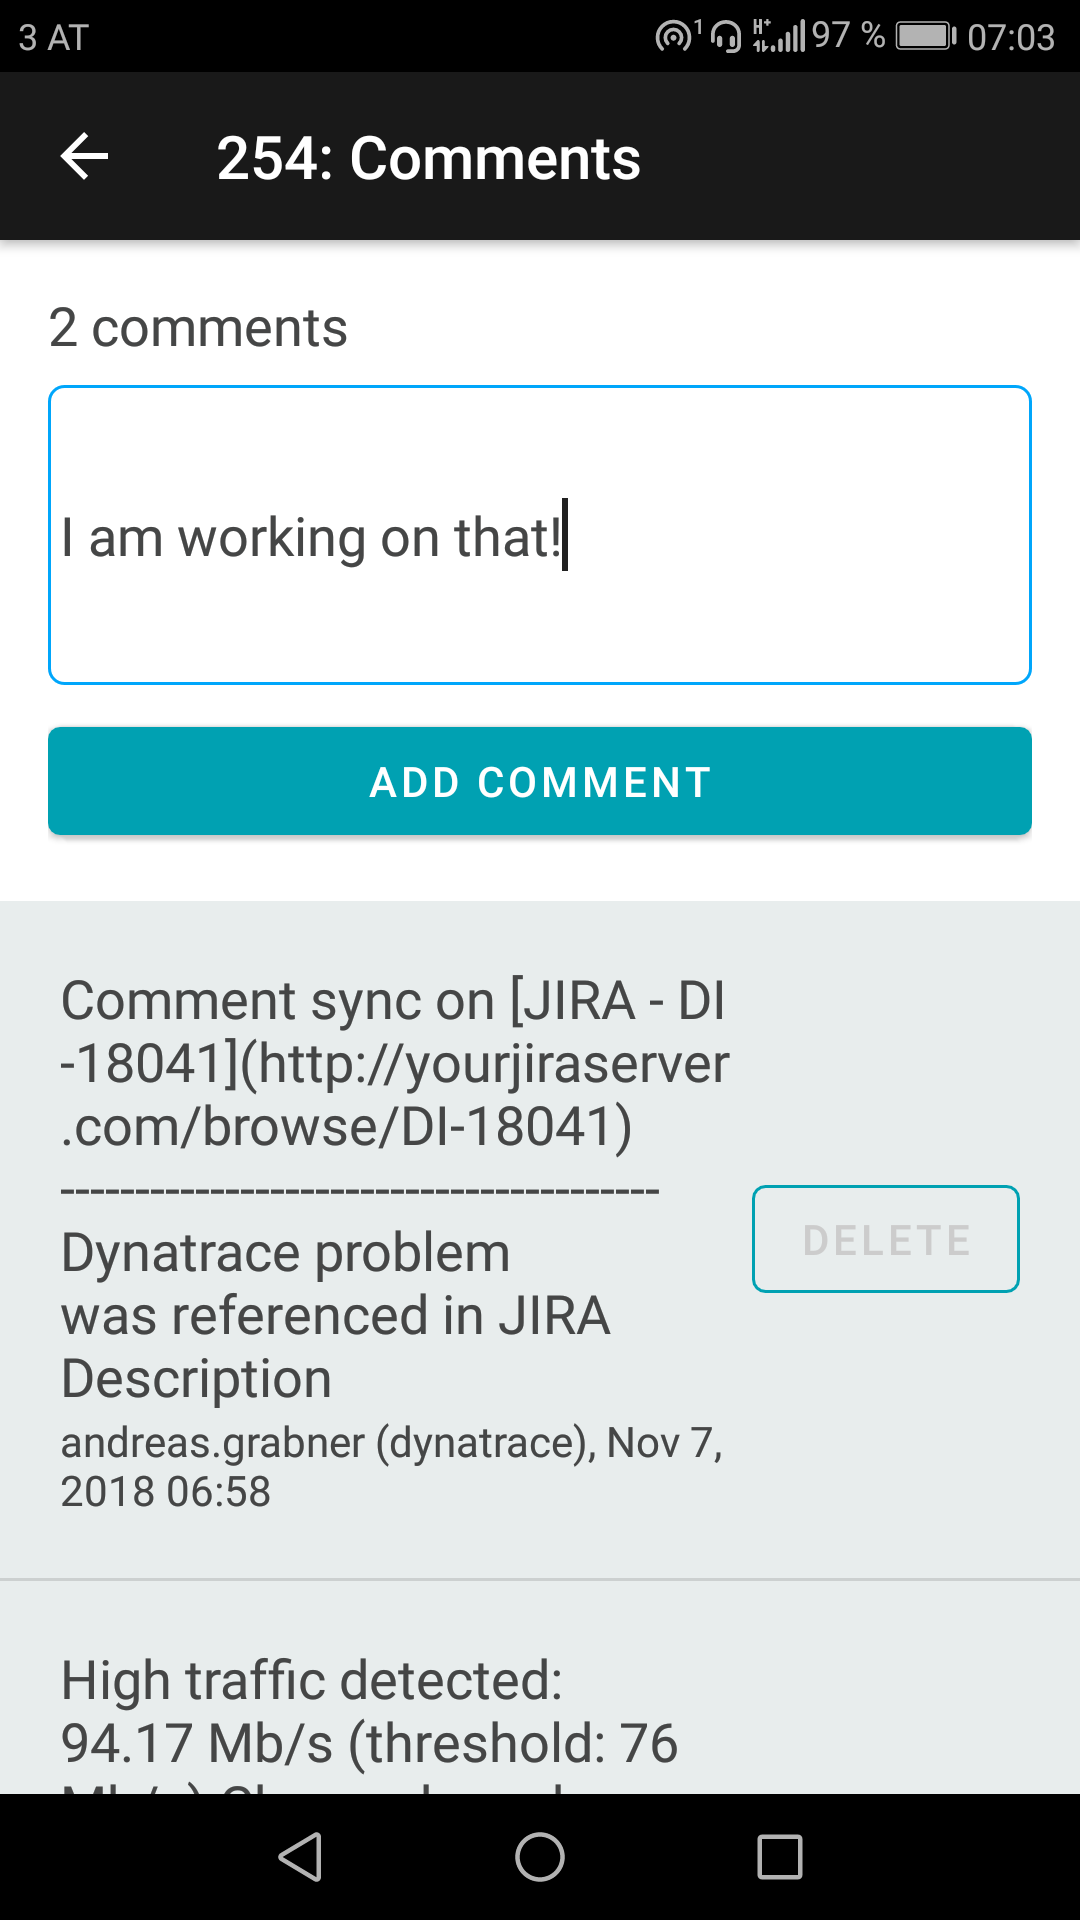 Problem comment details in Dynatrace mobile app